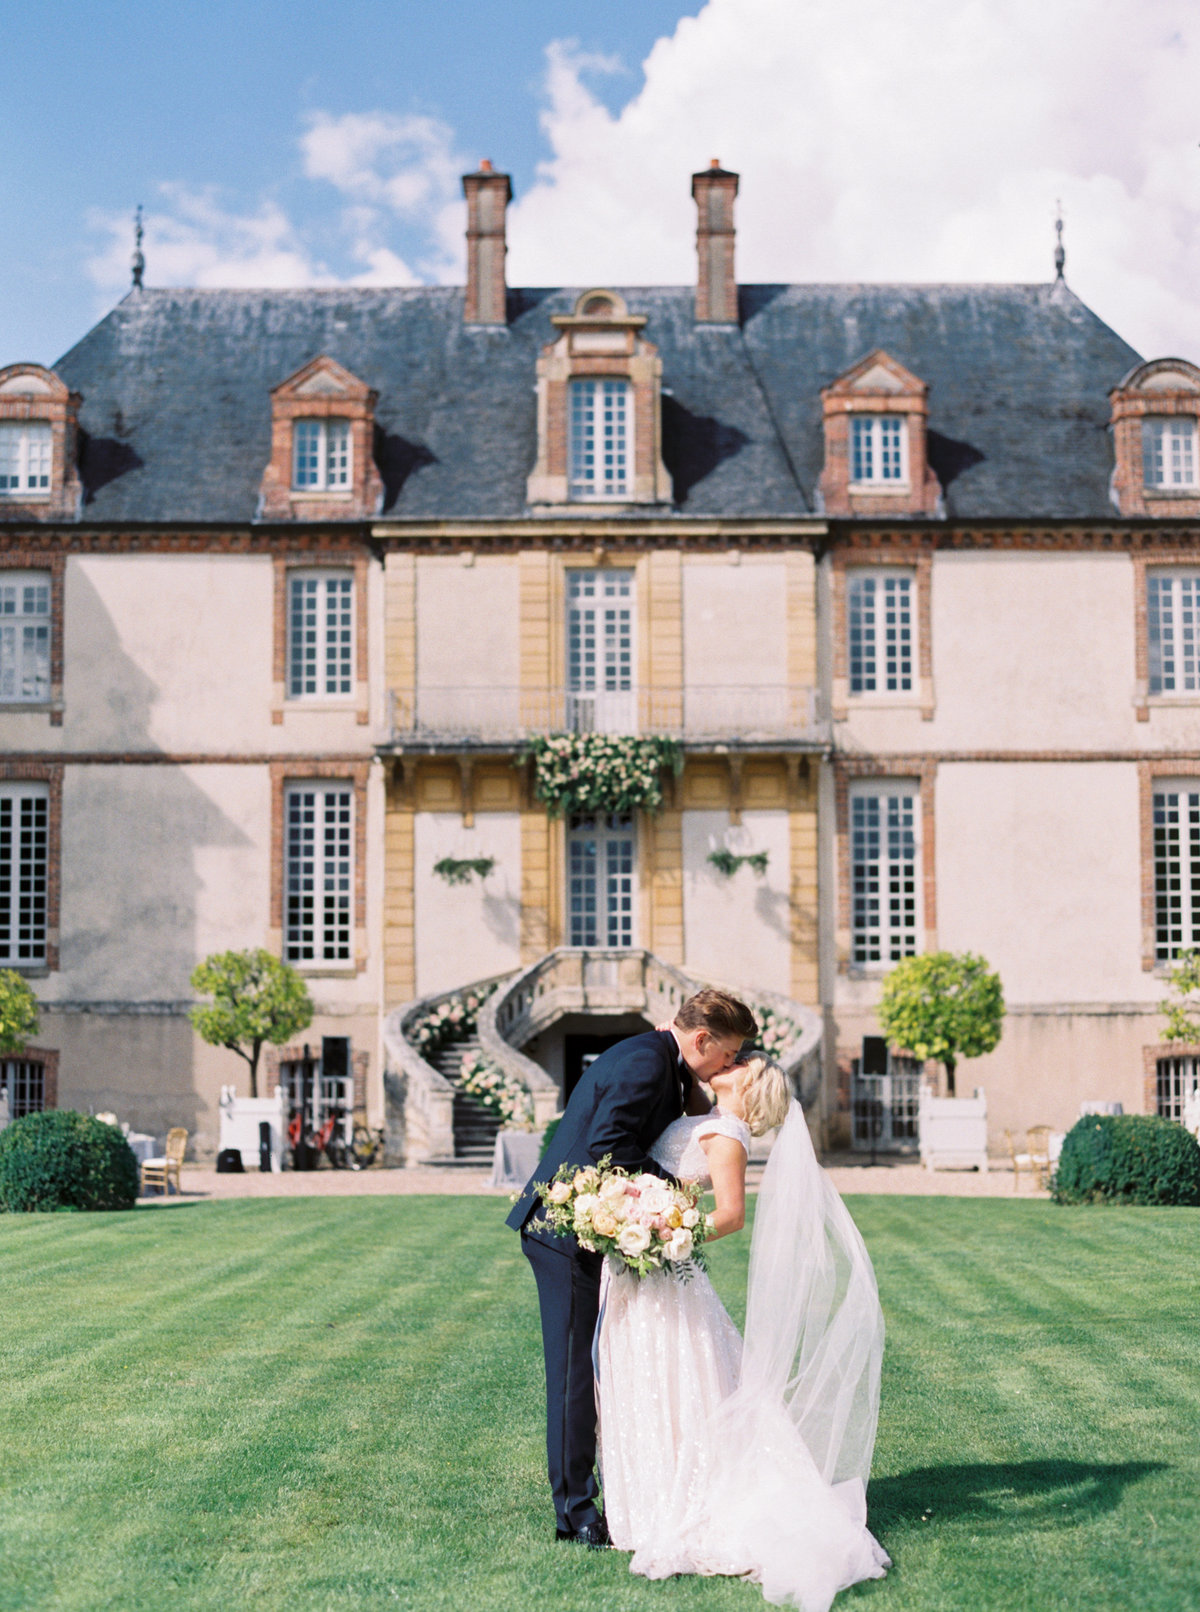 Paris France Wedding - Mary Claire Photography-43